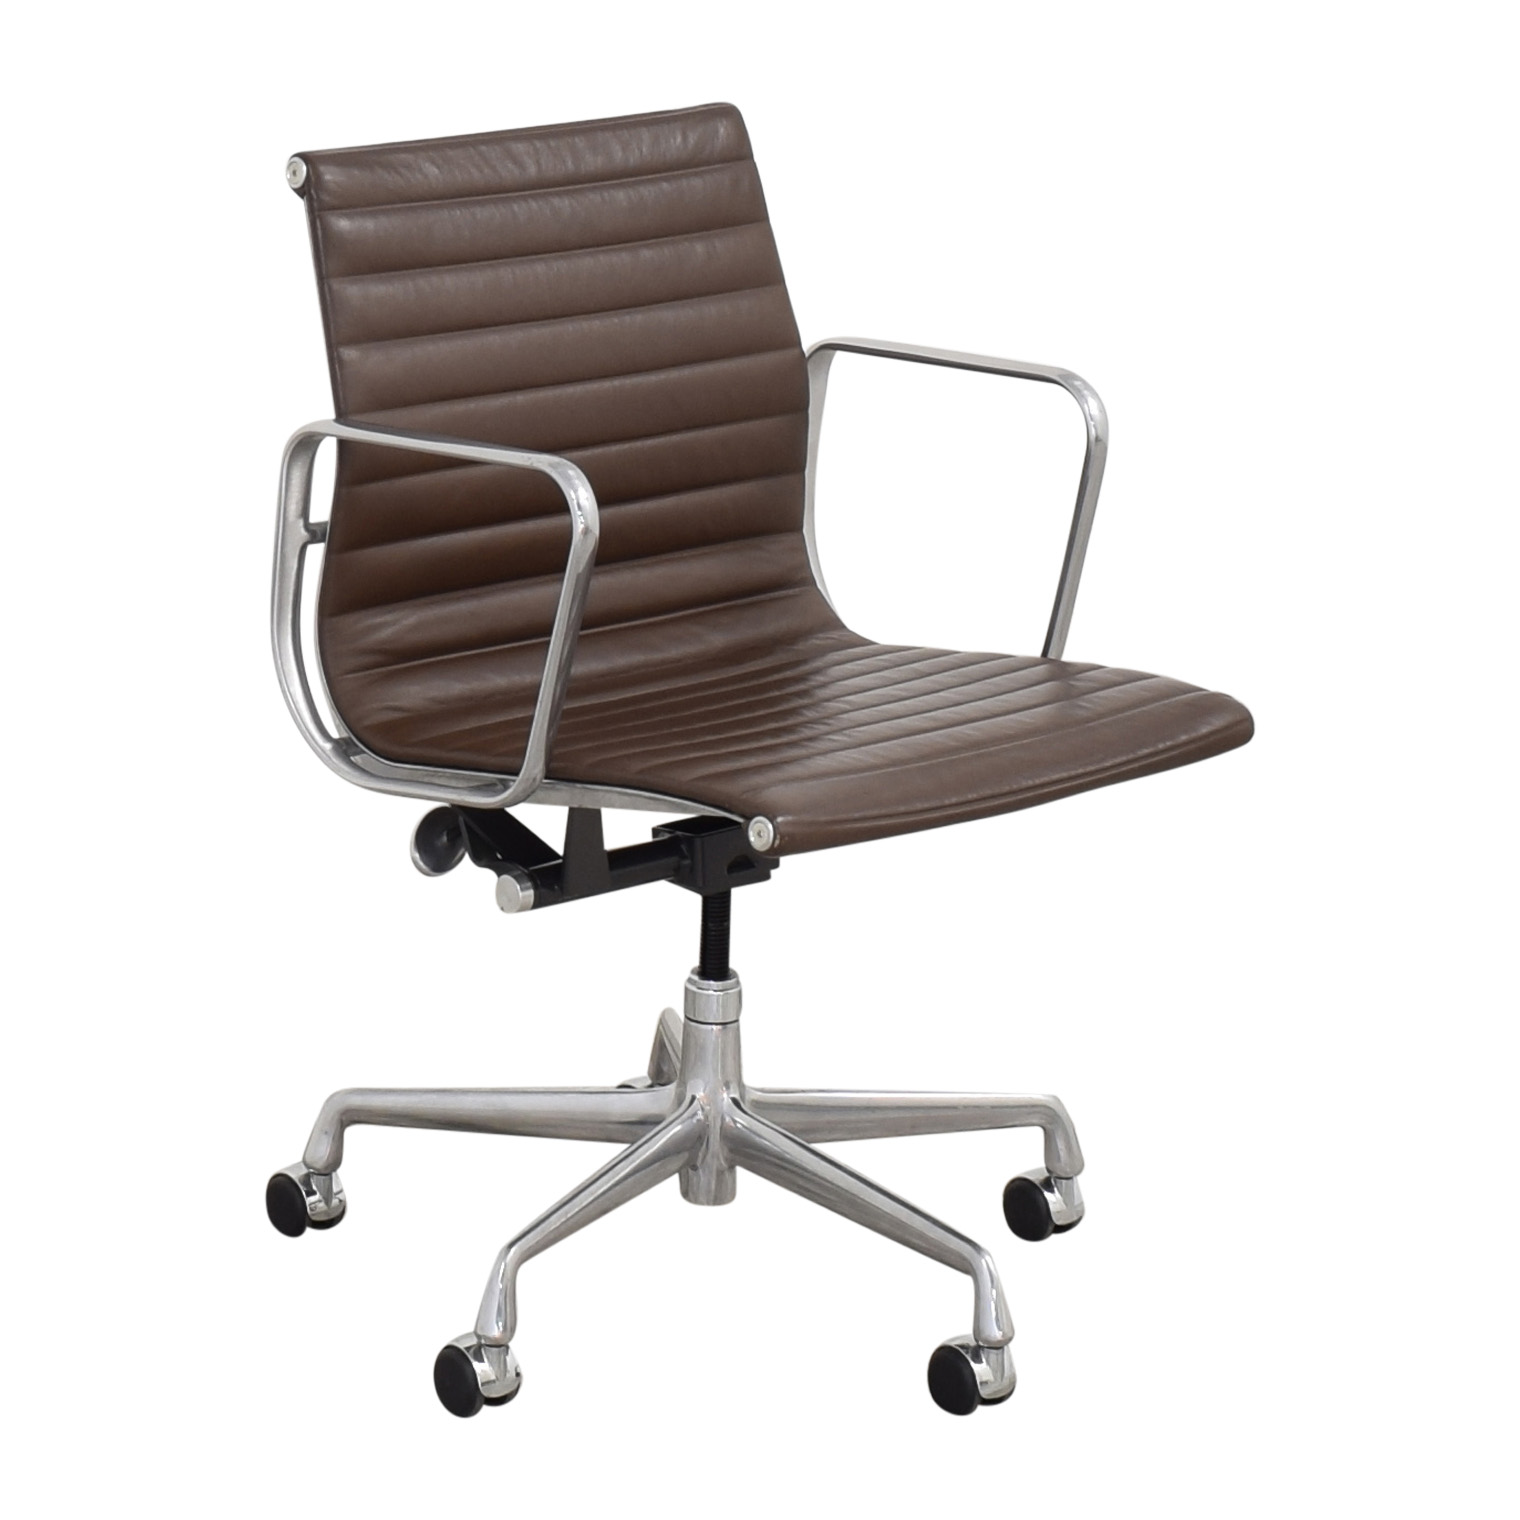 79 Off Herman Miller Herman Miller Eames Aluminum Group Management Chair Chairs